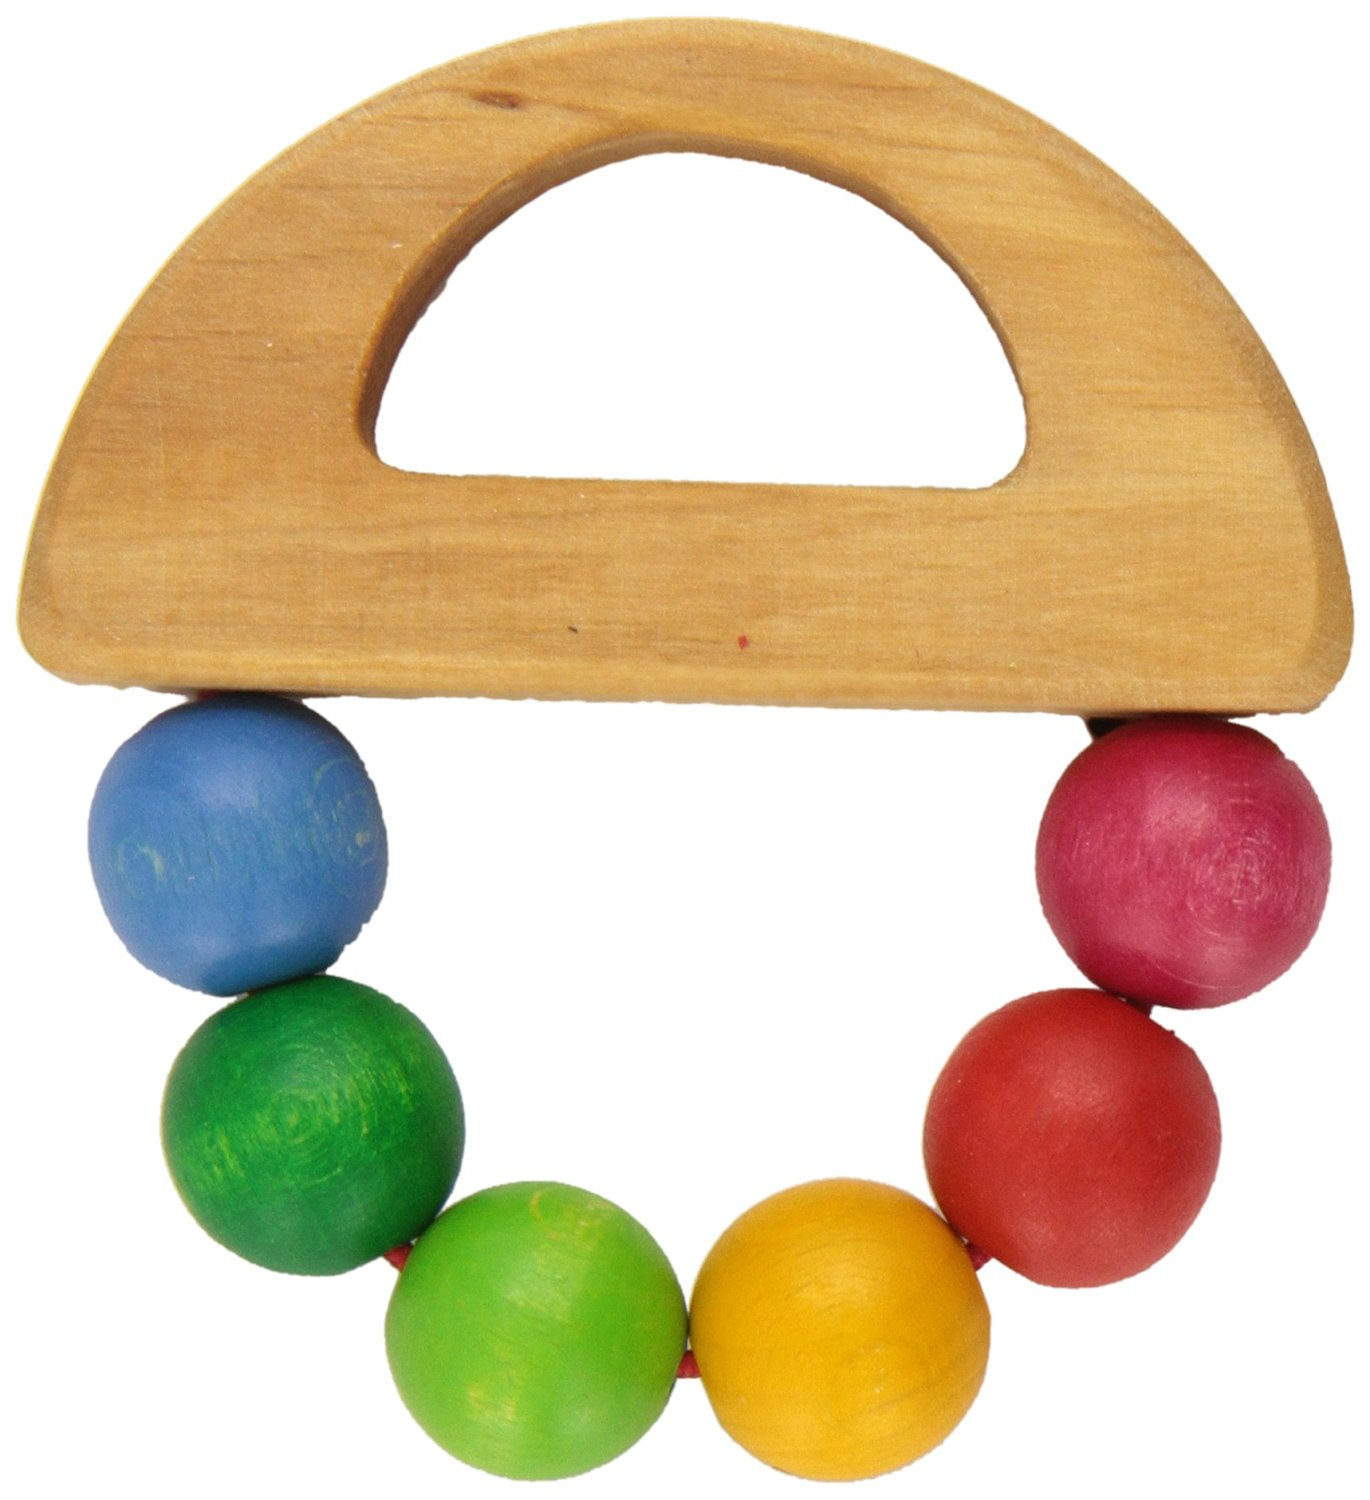 Handmade in Germany Wooden Baby Rattle Toy with Large Balls in Rainbow Colors Grimms Beads Grasper